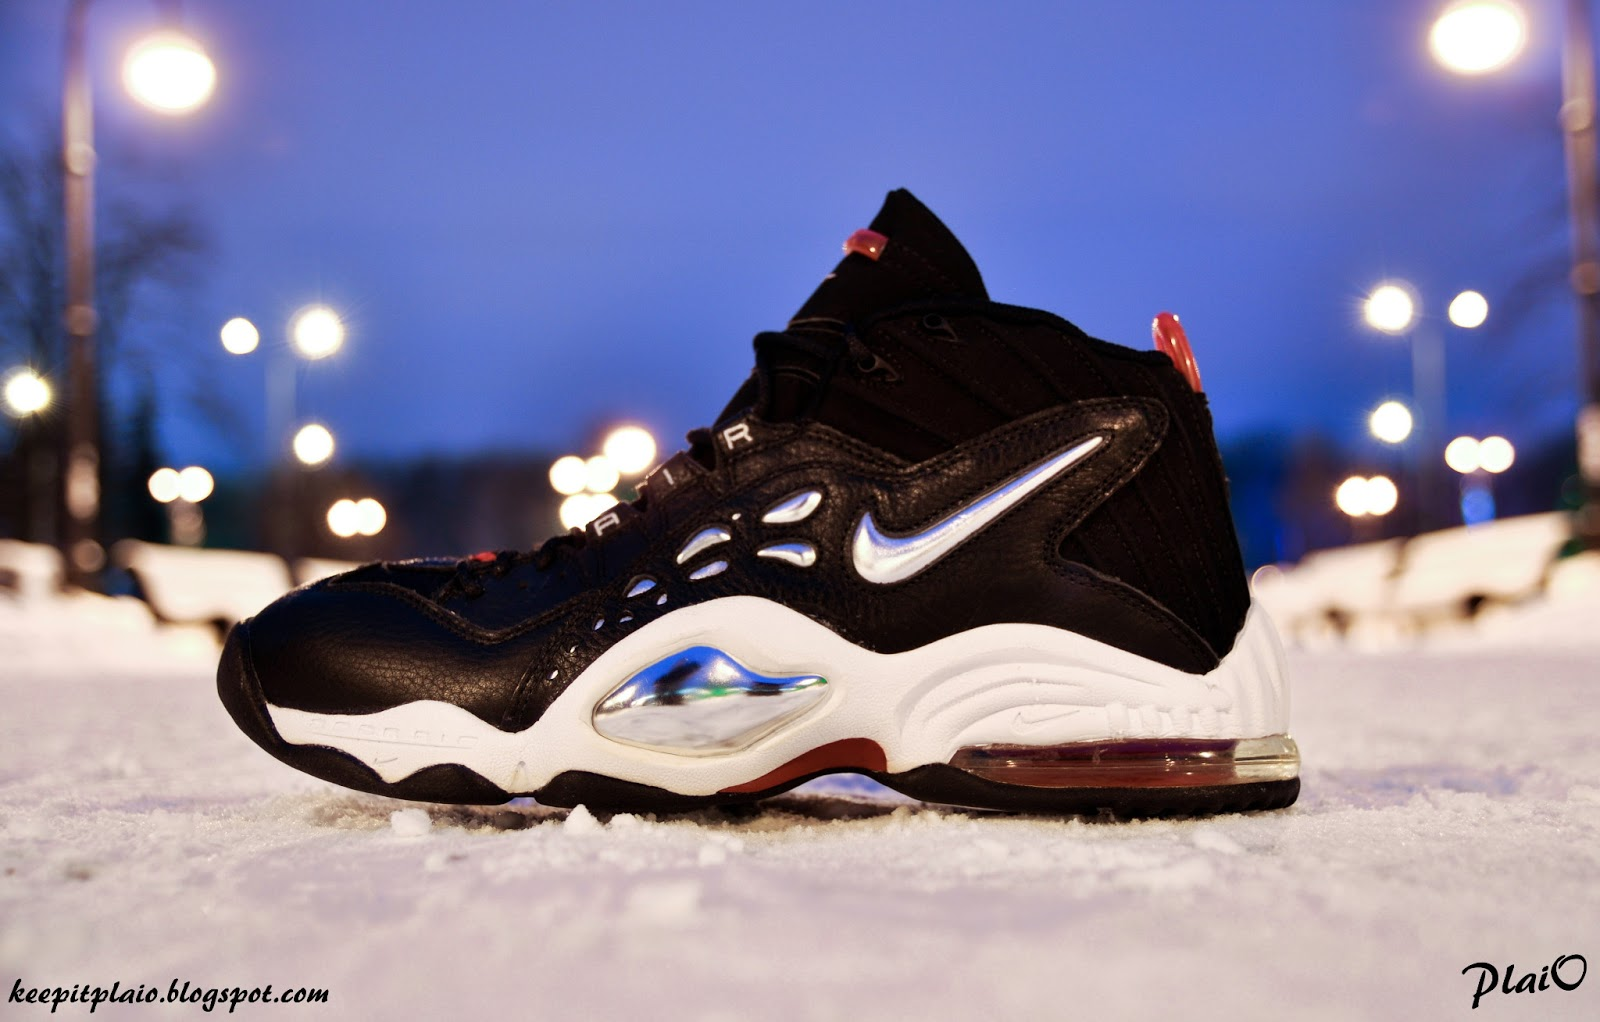 awesome nike basketball shoes pics